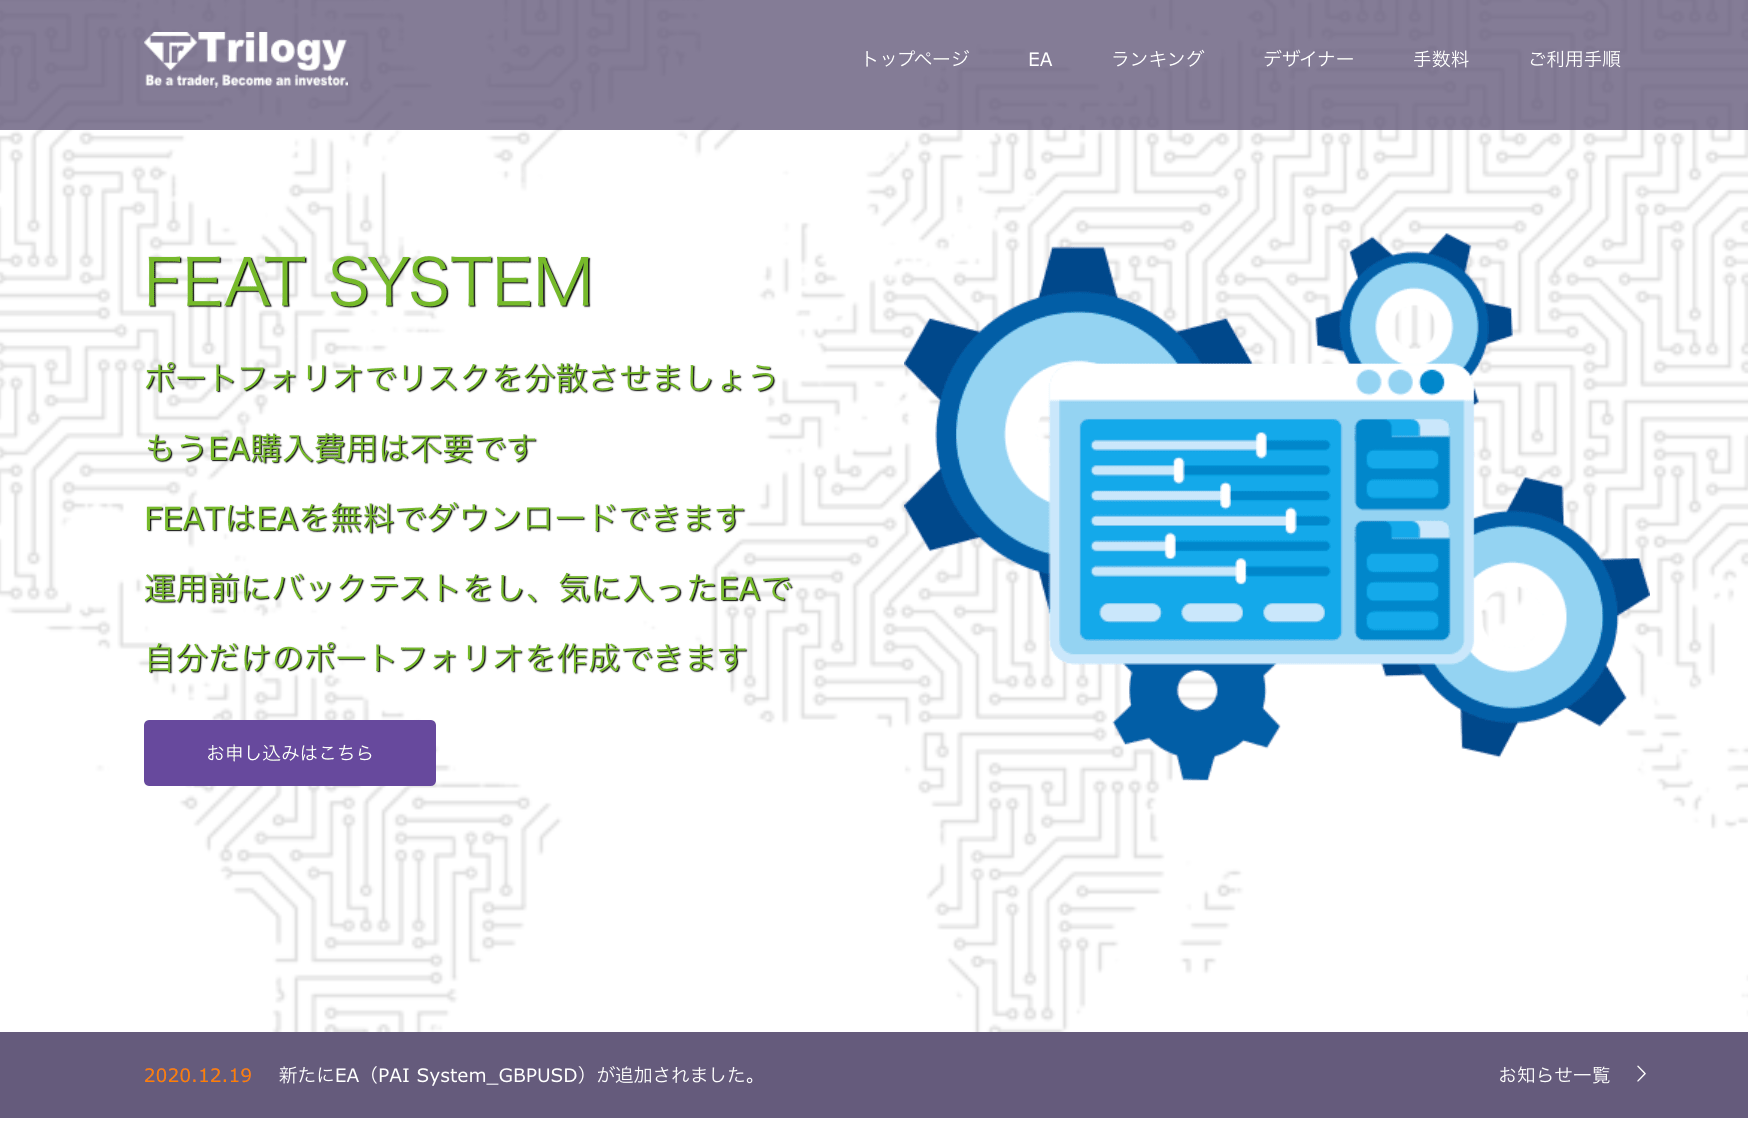 FEAT SYSTEM(フィートシステム)